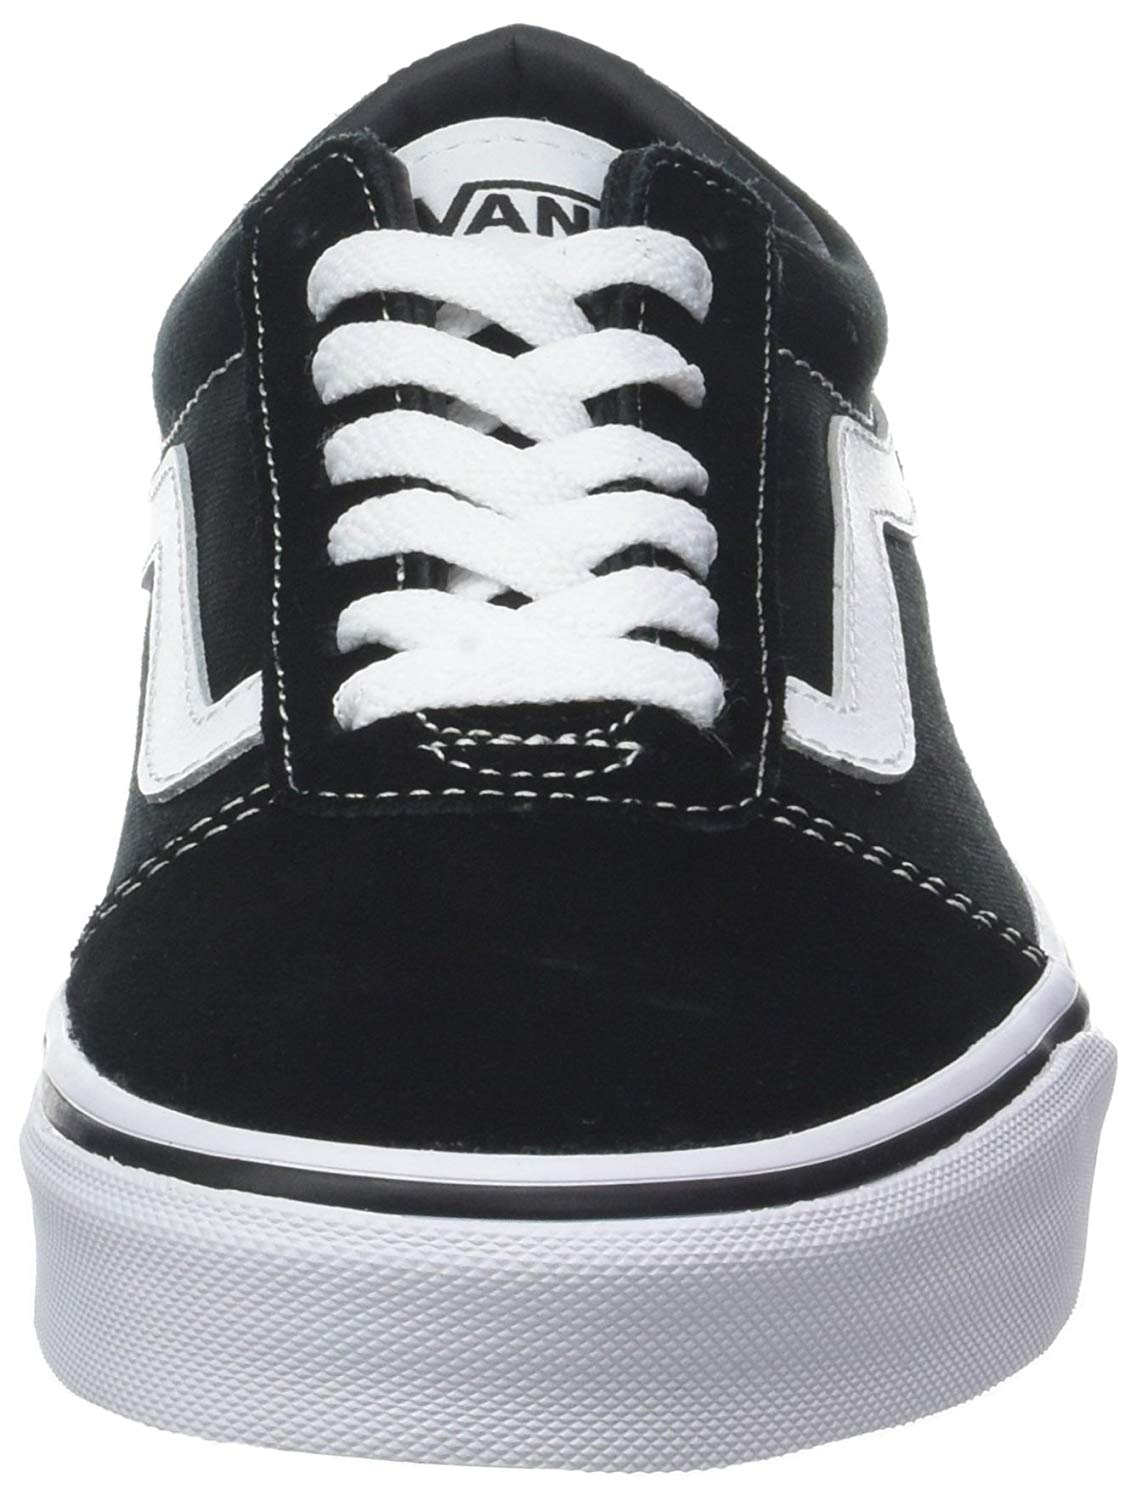 048e270d1caa76 Vans Mens Ward Canvas Low Top Lace Up Fashion Sneakers